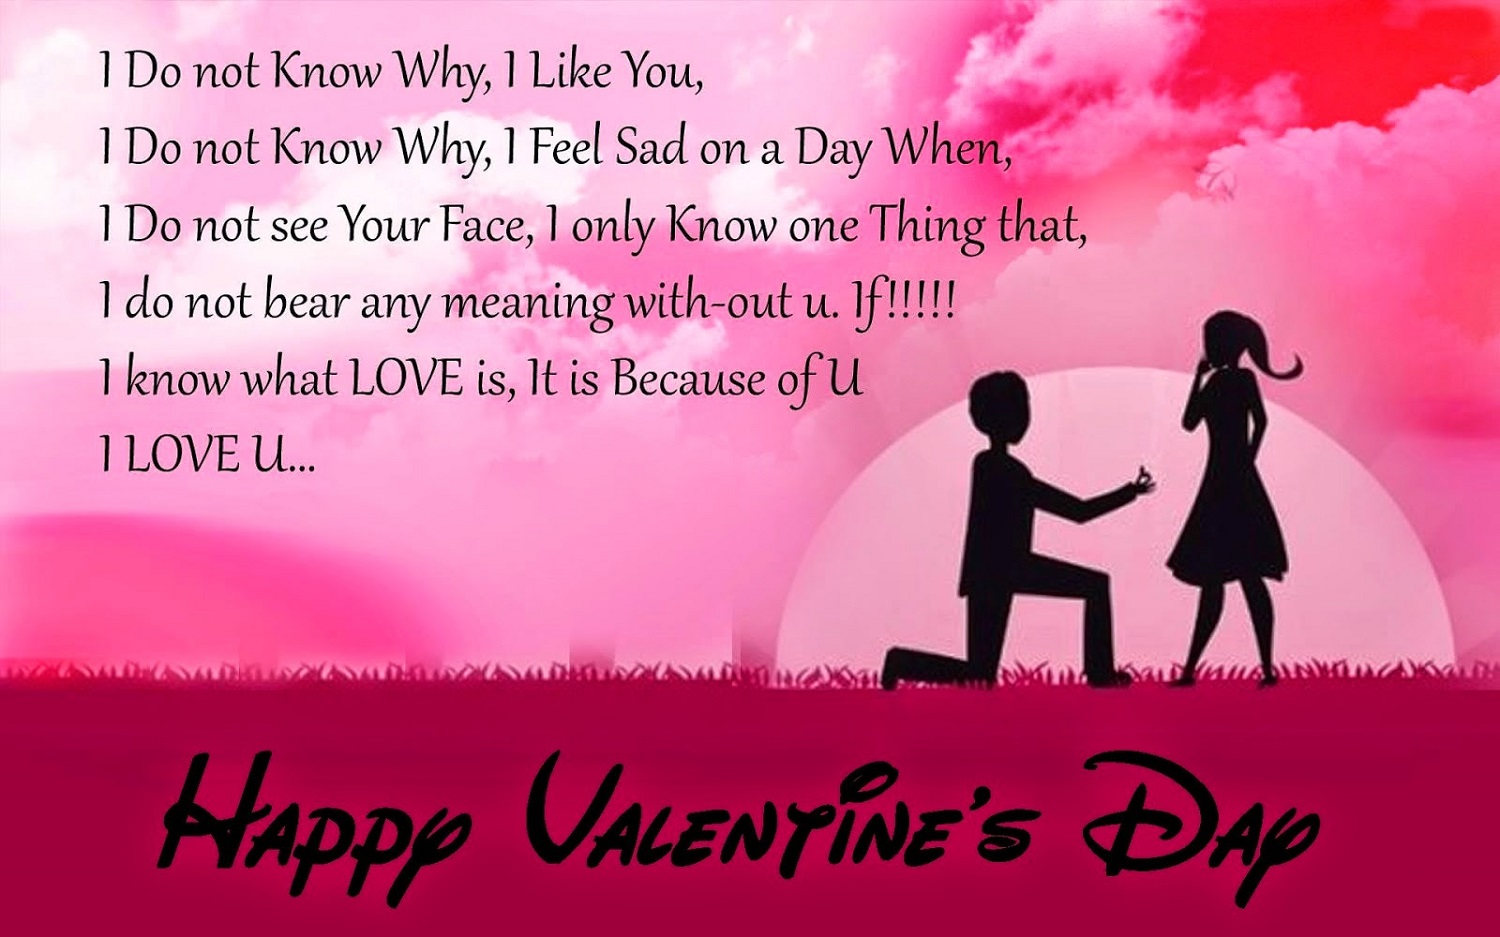 Happy Valentines Day 2018 Quotes Wishes Images Wallpapers – Valentines Cards Messages